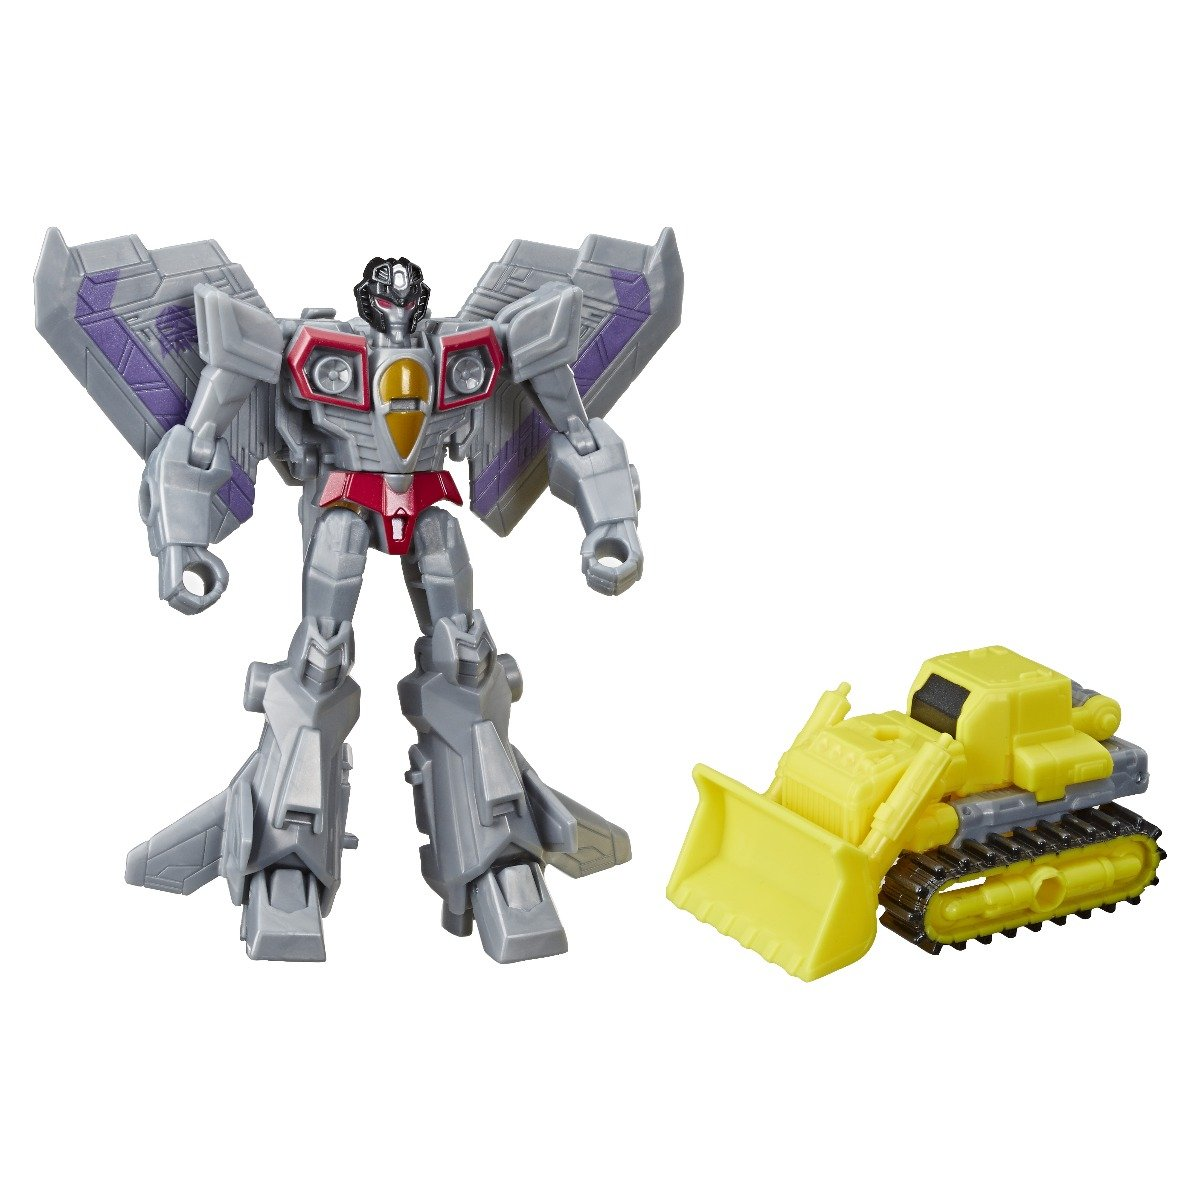 Figurina Transformers Cyberverse, Starscream Demolition Destroyer, E4298